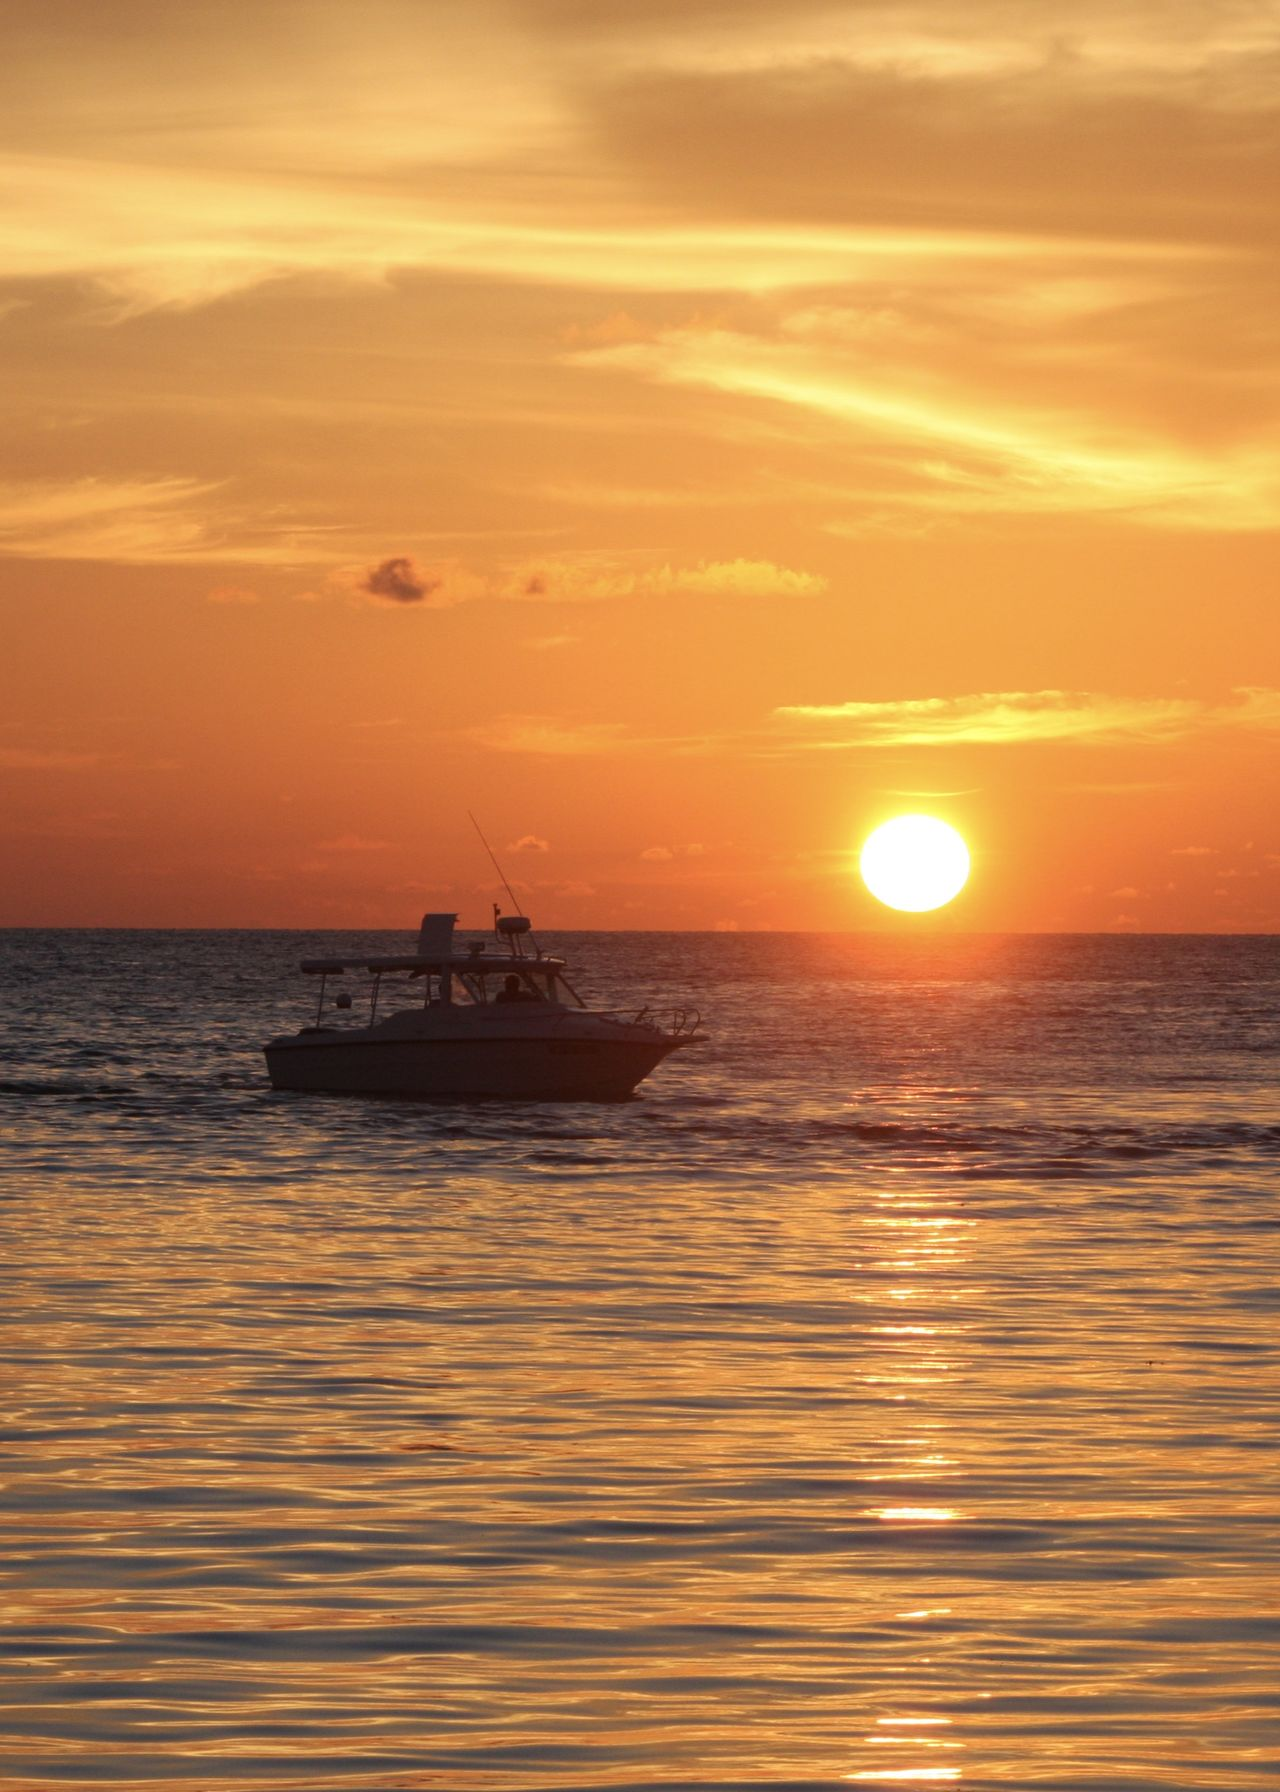 golden hour, sunset on the maldives Beauty In Nature Colors Golden Hour Holiday Horizon Over Water Jet Boat Light Maldives Nature Nautical Vessel Orange Color Outdoors Reflection Relax Sailing Scenics Sea Silhouette Sky Sun Sunset Tranquil Scene Tranquility Travel Water